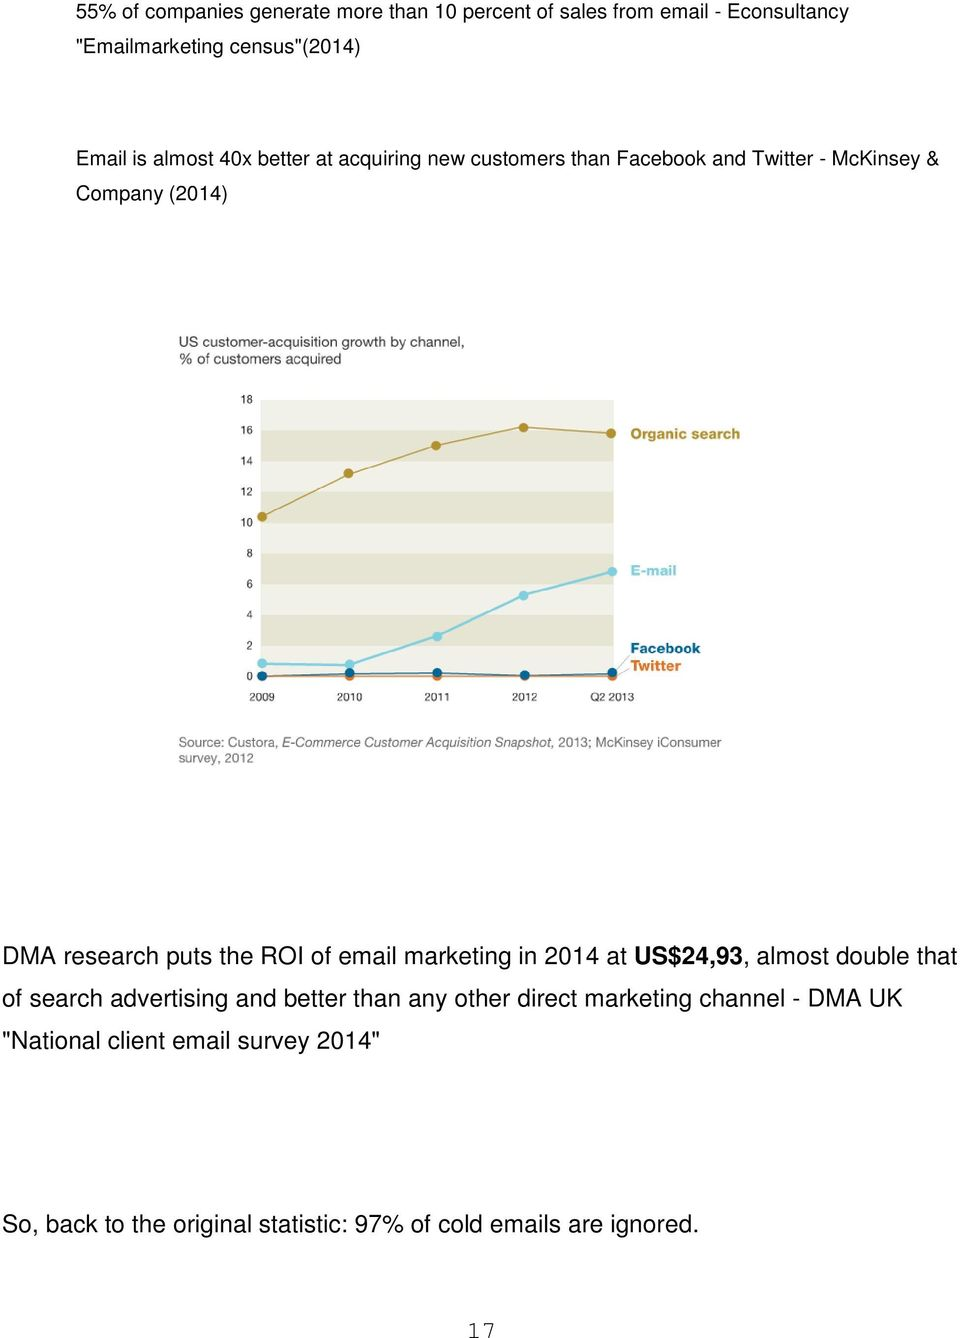 ROI of email marketing in 2014 at US$24,93, almost double that of search advertising and better than any other direct